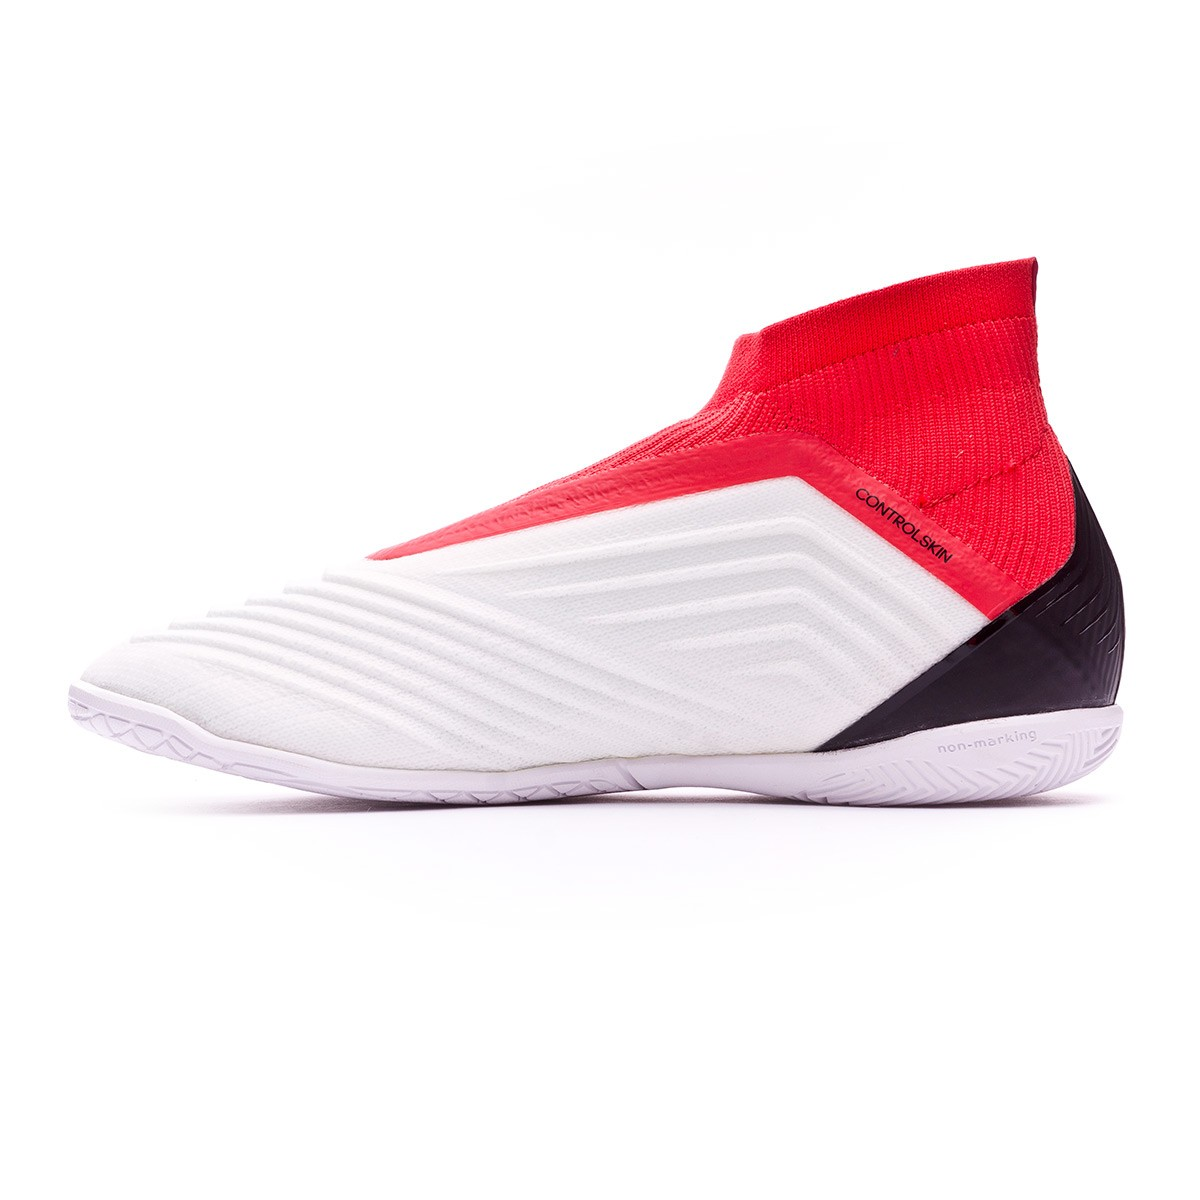 premium selection 701f7 becdf Futsal Boot adidas Predator Tango 18+ IN Niño White-Core black-Real coral -  Football store Fútbol Emotion